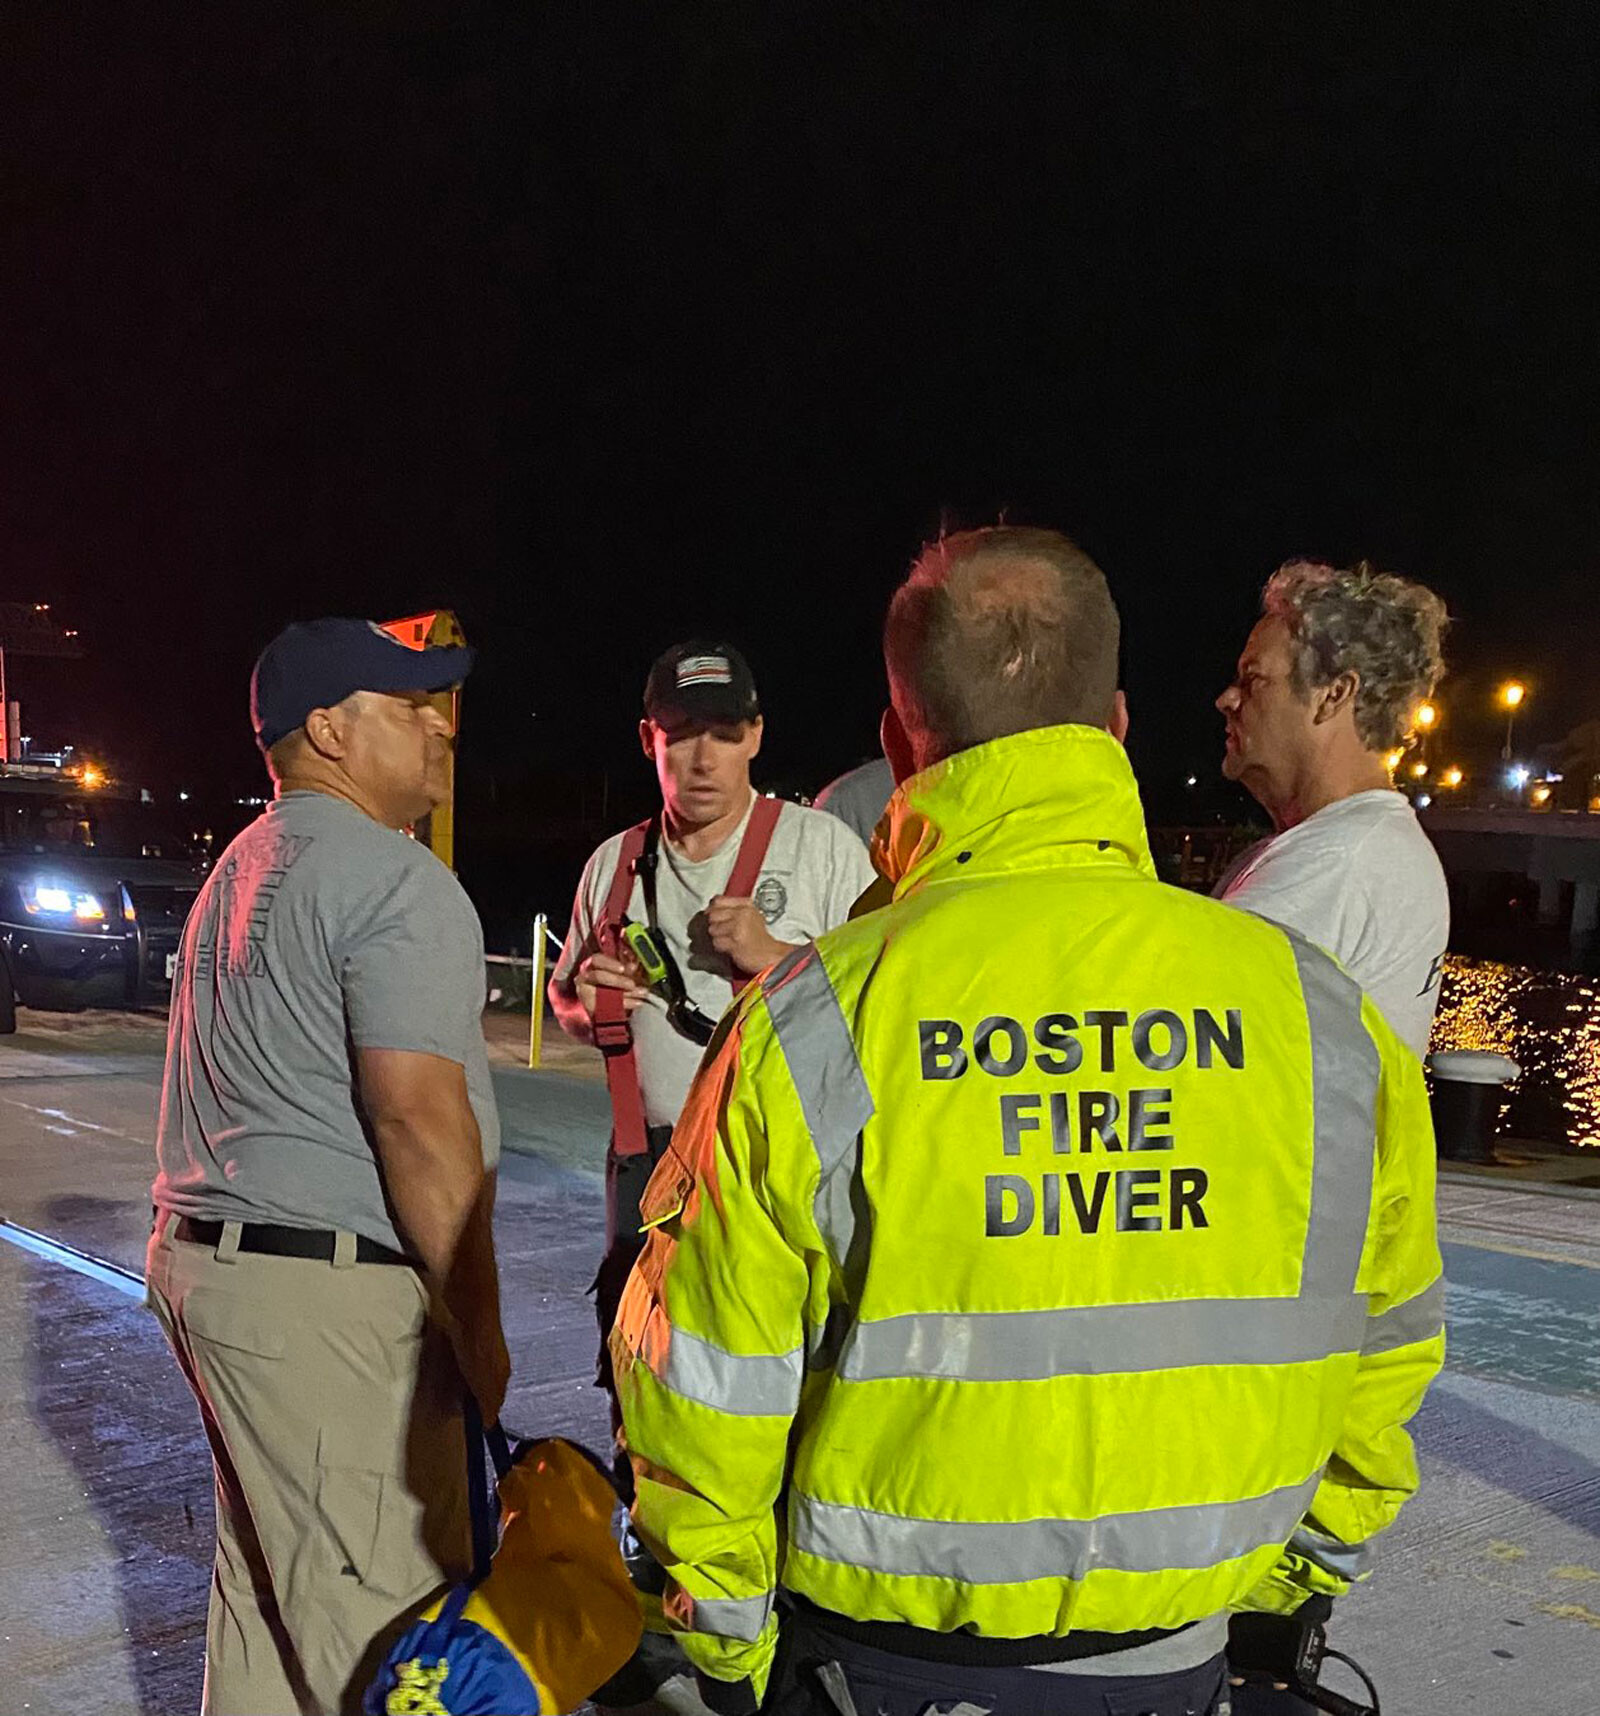 1 person dead, 7 rescued after boat accident in Boston Harbor